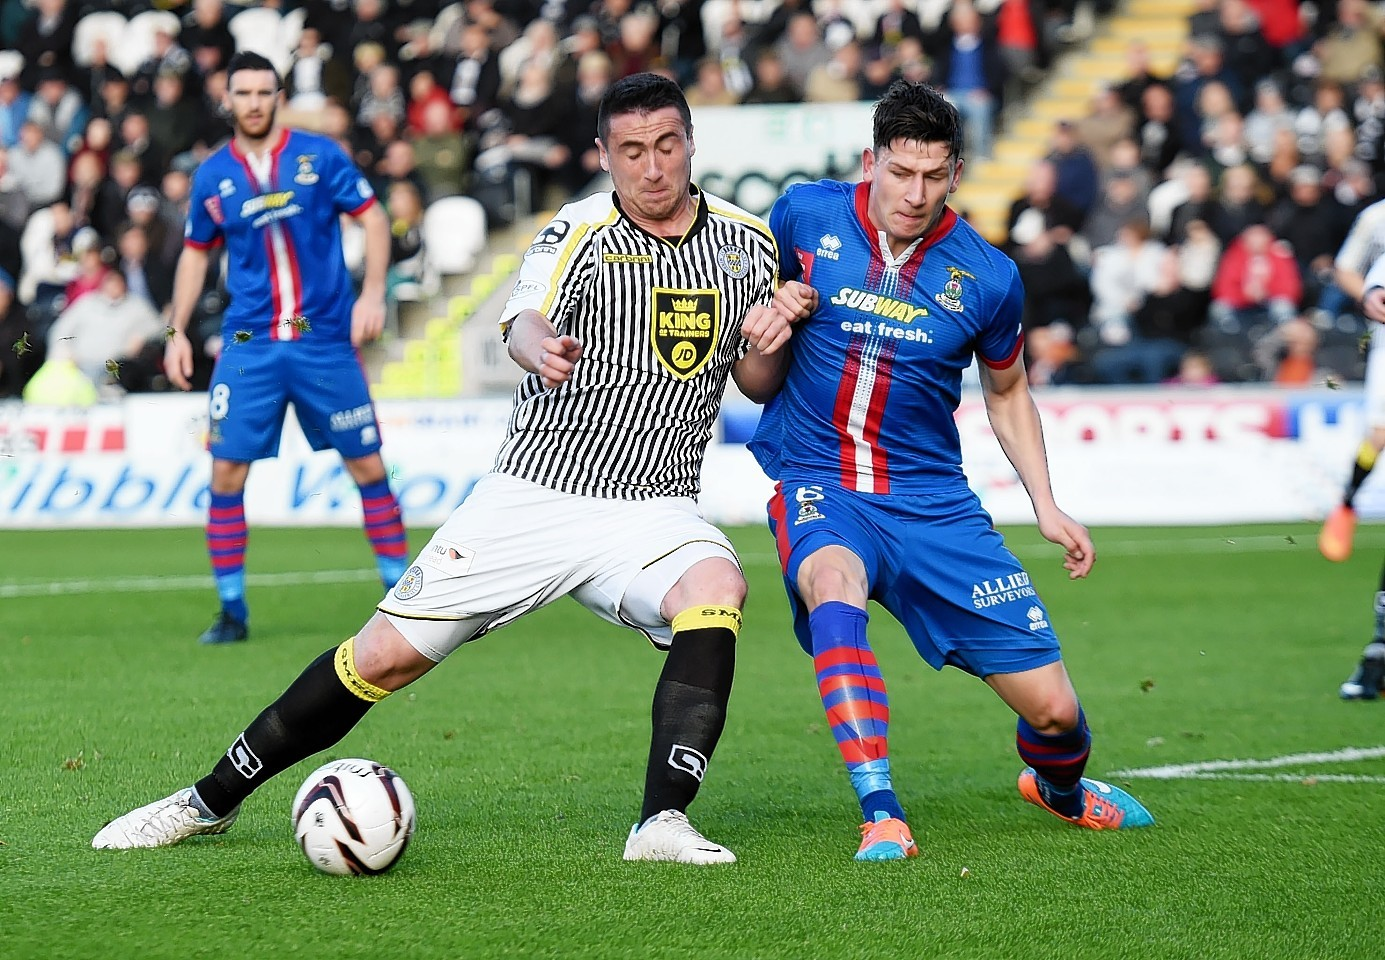 Josh Meekings has impressed at the heart of the Inverness defence